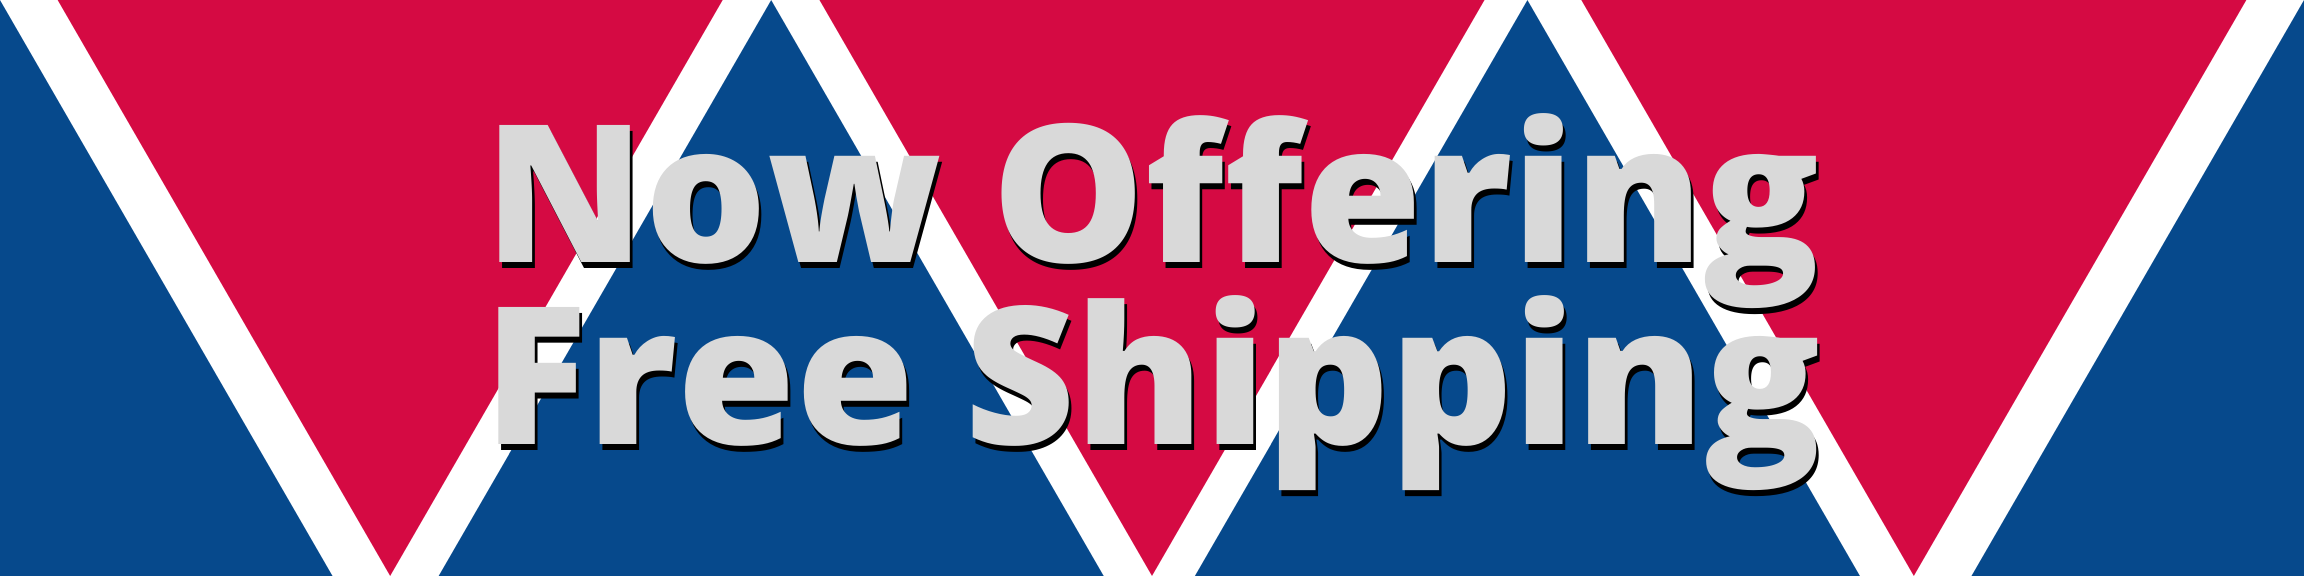 free-shipping-banner3.png